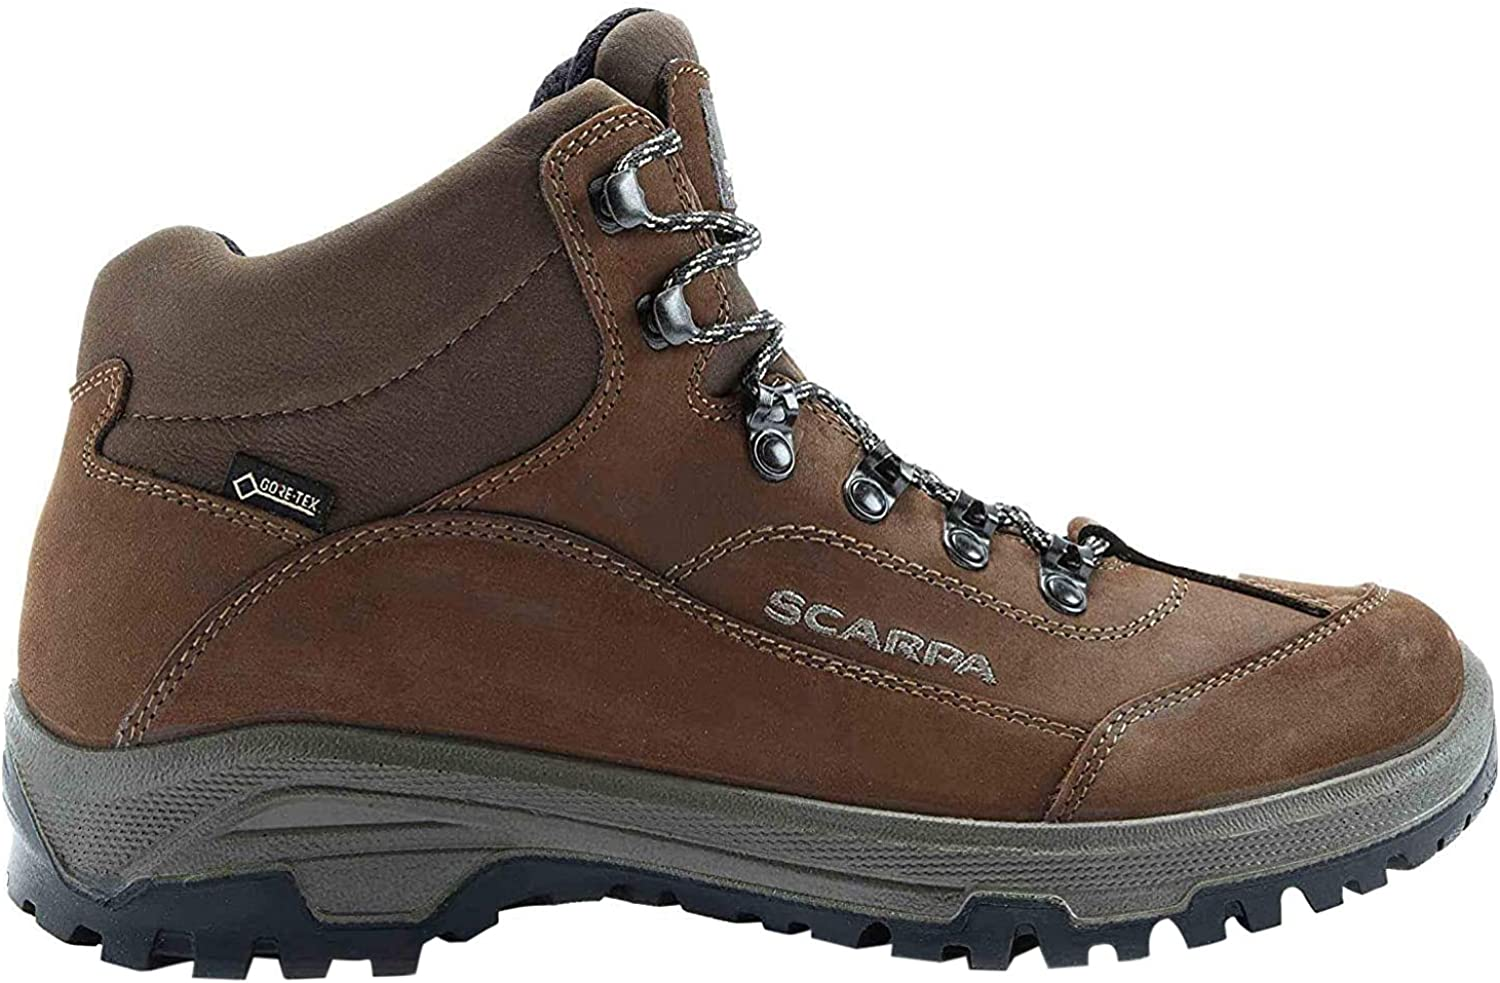 SCARPA Cyrus Gore-TEX Mid Hiking Boots – AW20